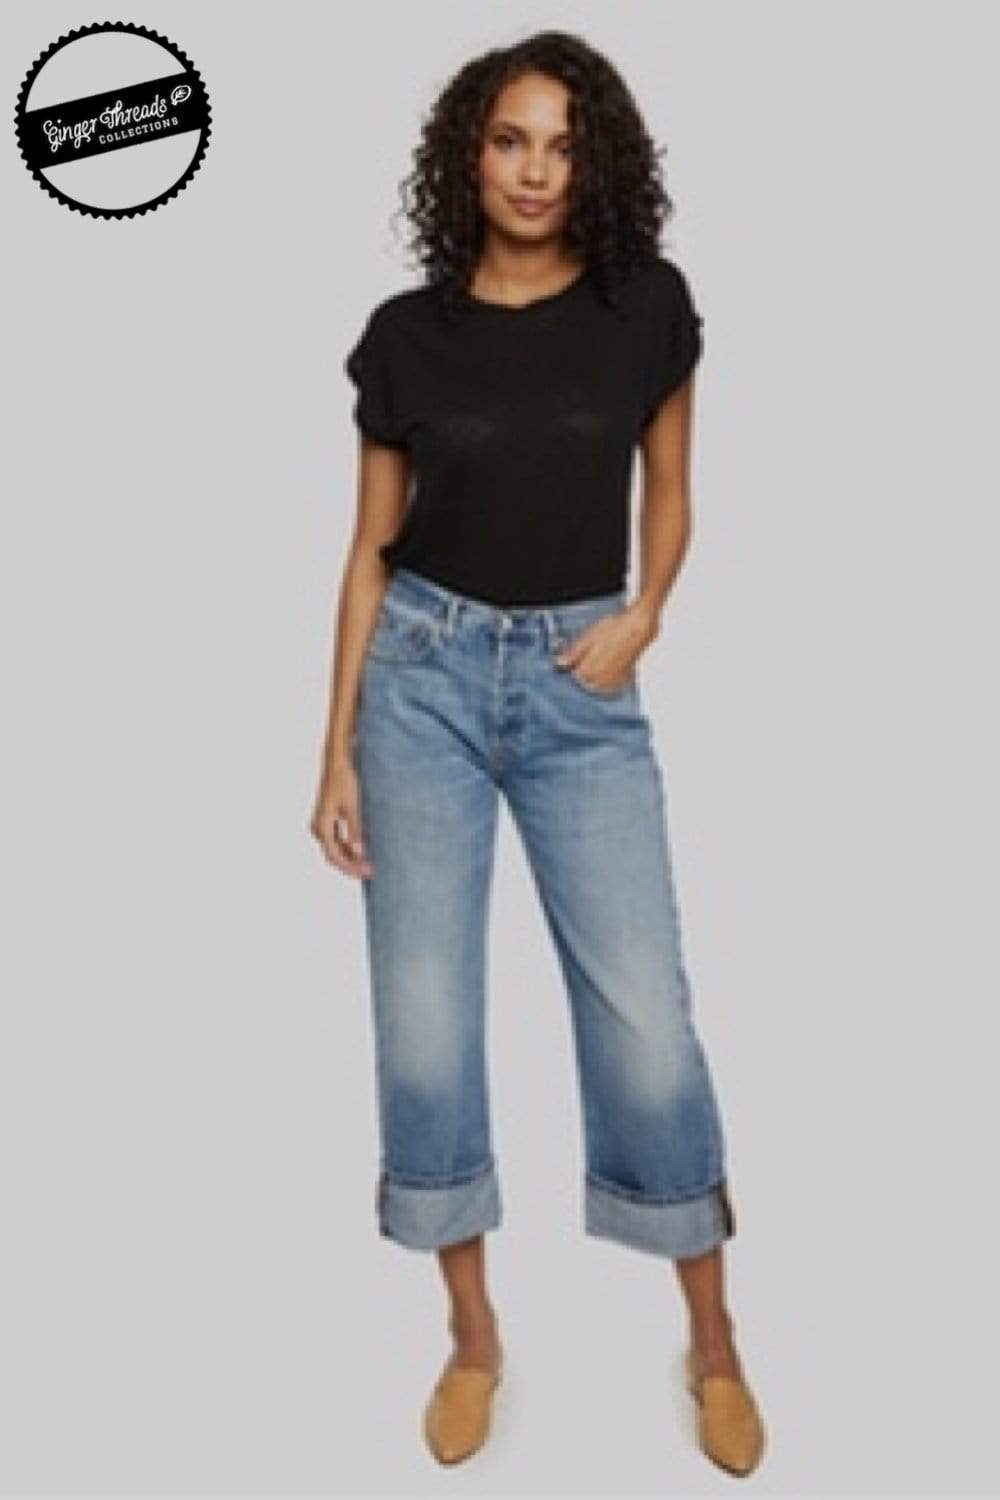 Ginger Threads Collections jeans Boyfriend Jeans